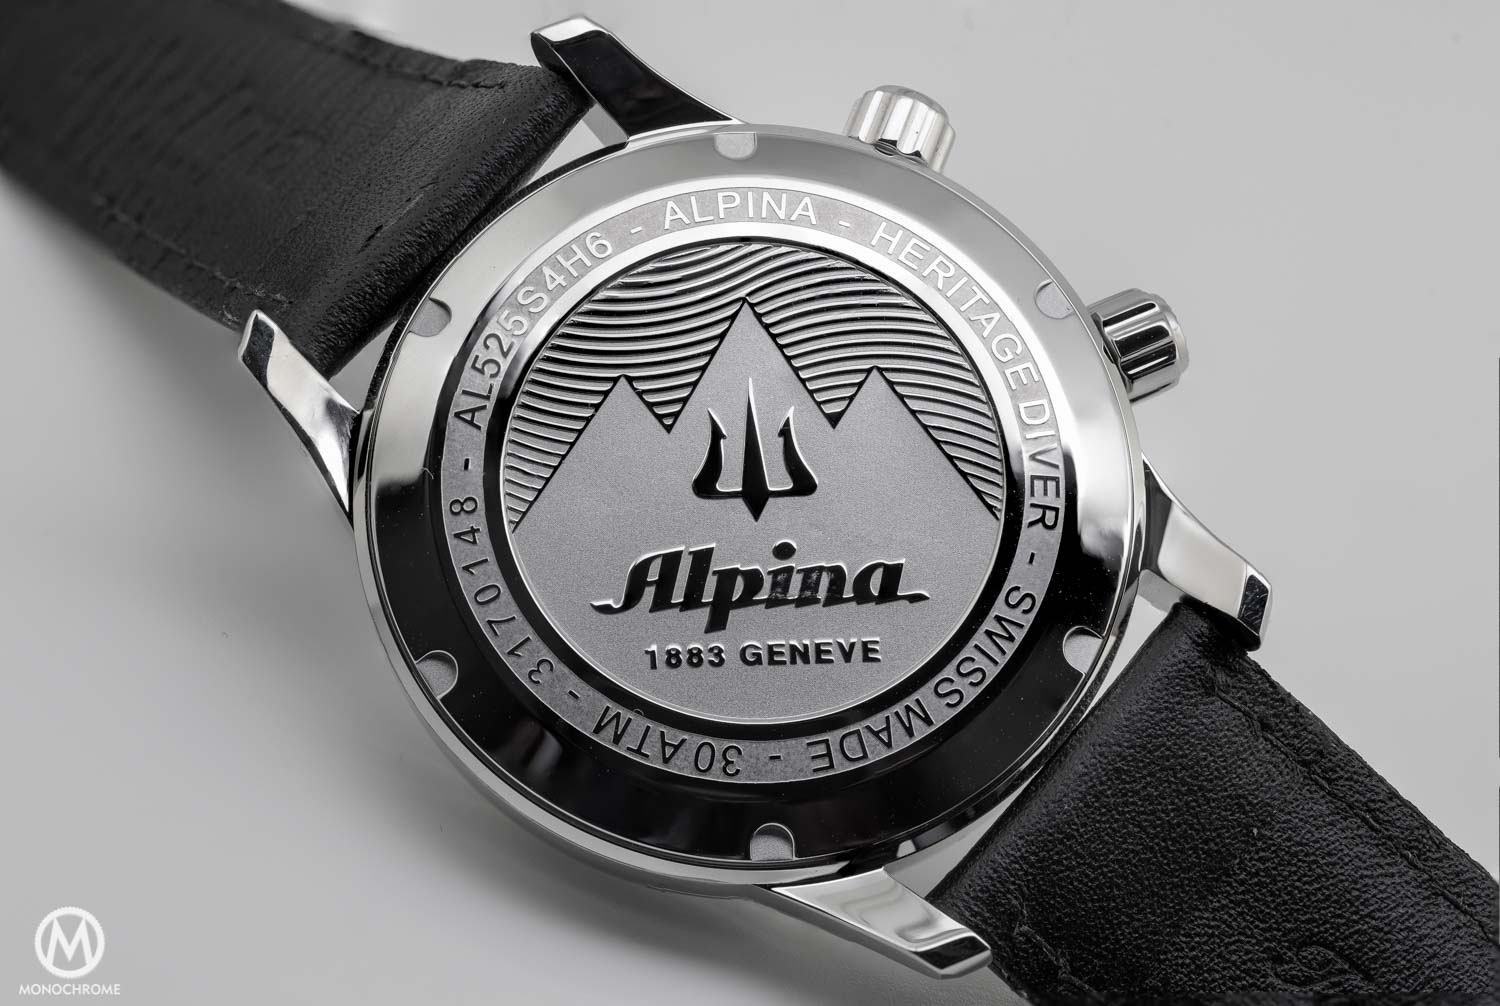 The Alpina Seastrong Diver Heritage A Vintage Inspired Diver Full - Alpina diver